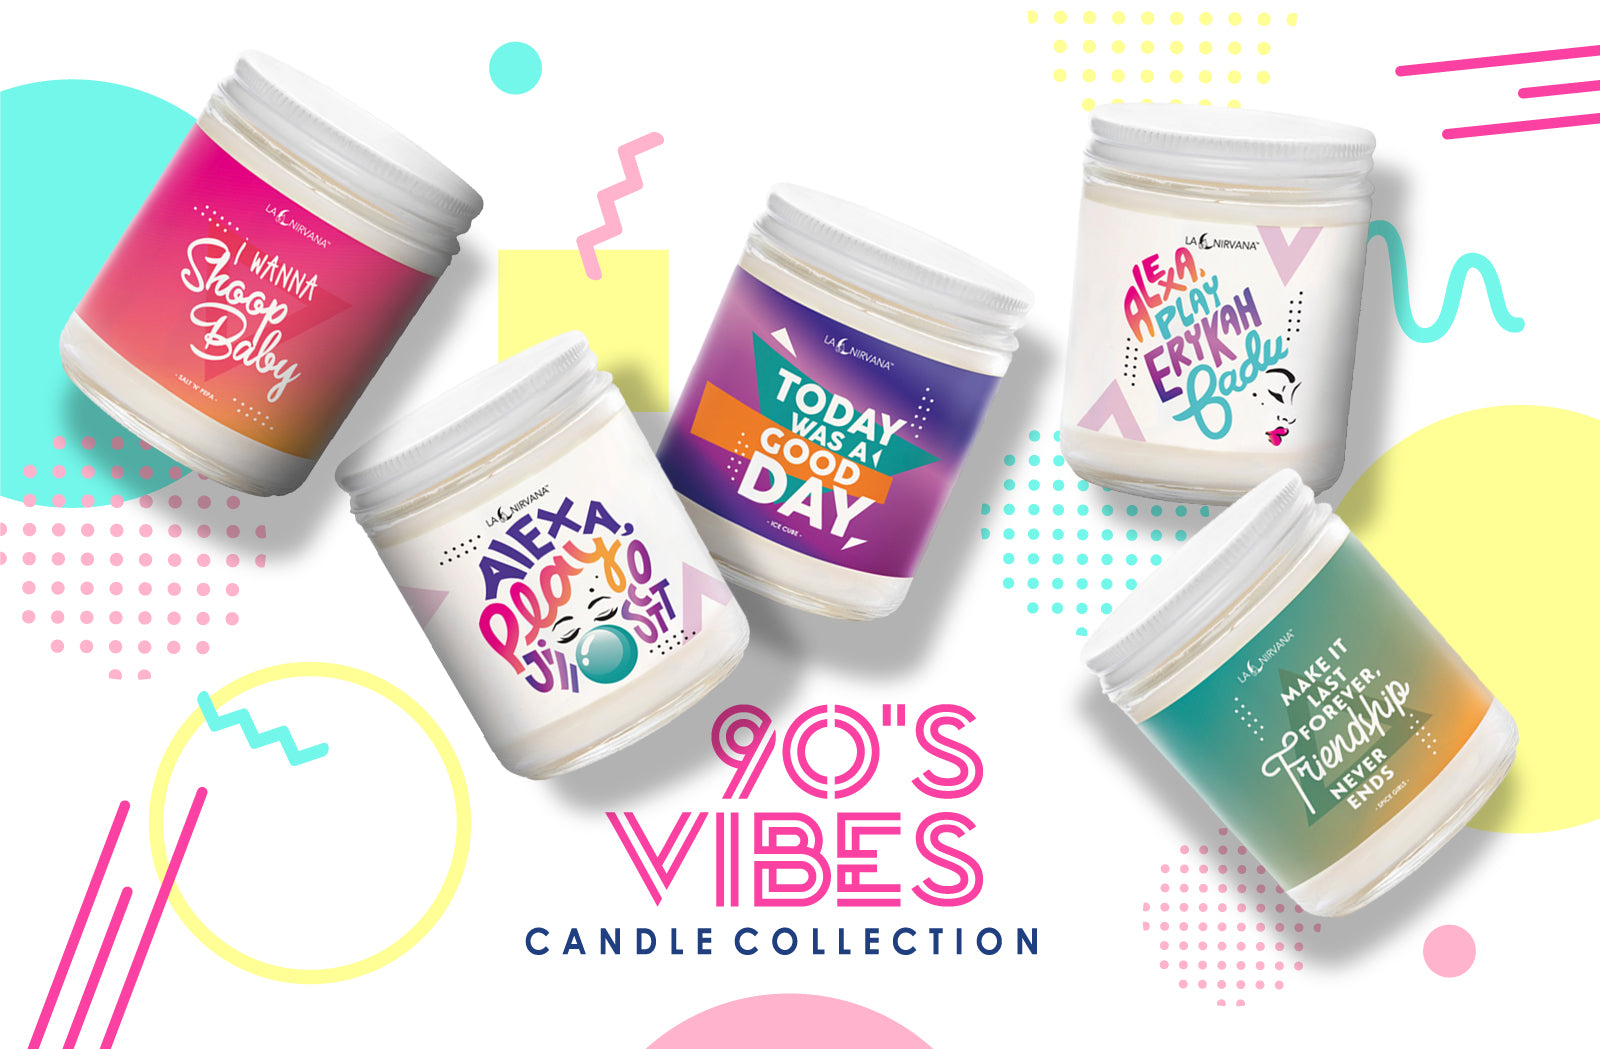 90's Good Vibes Scented Candle's